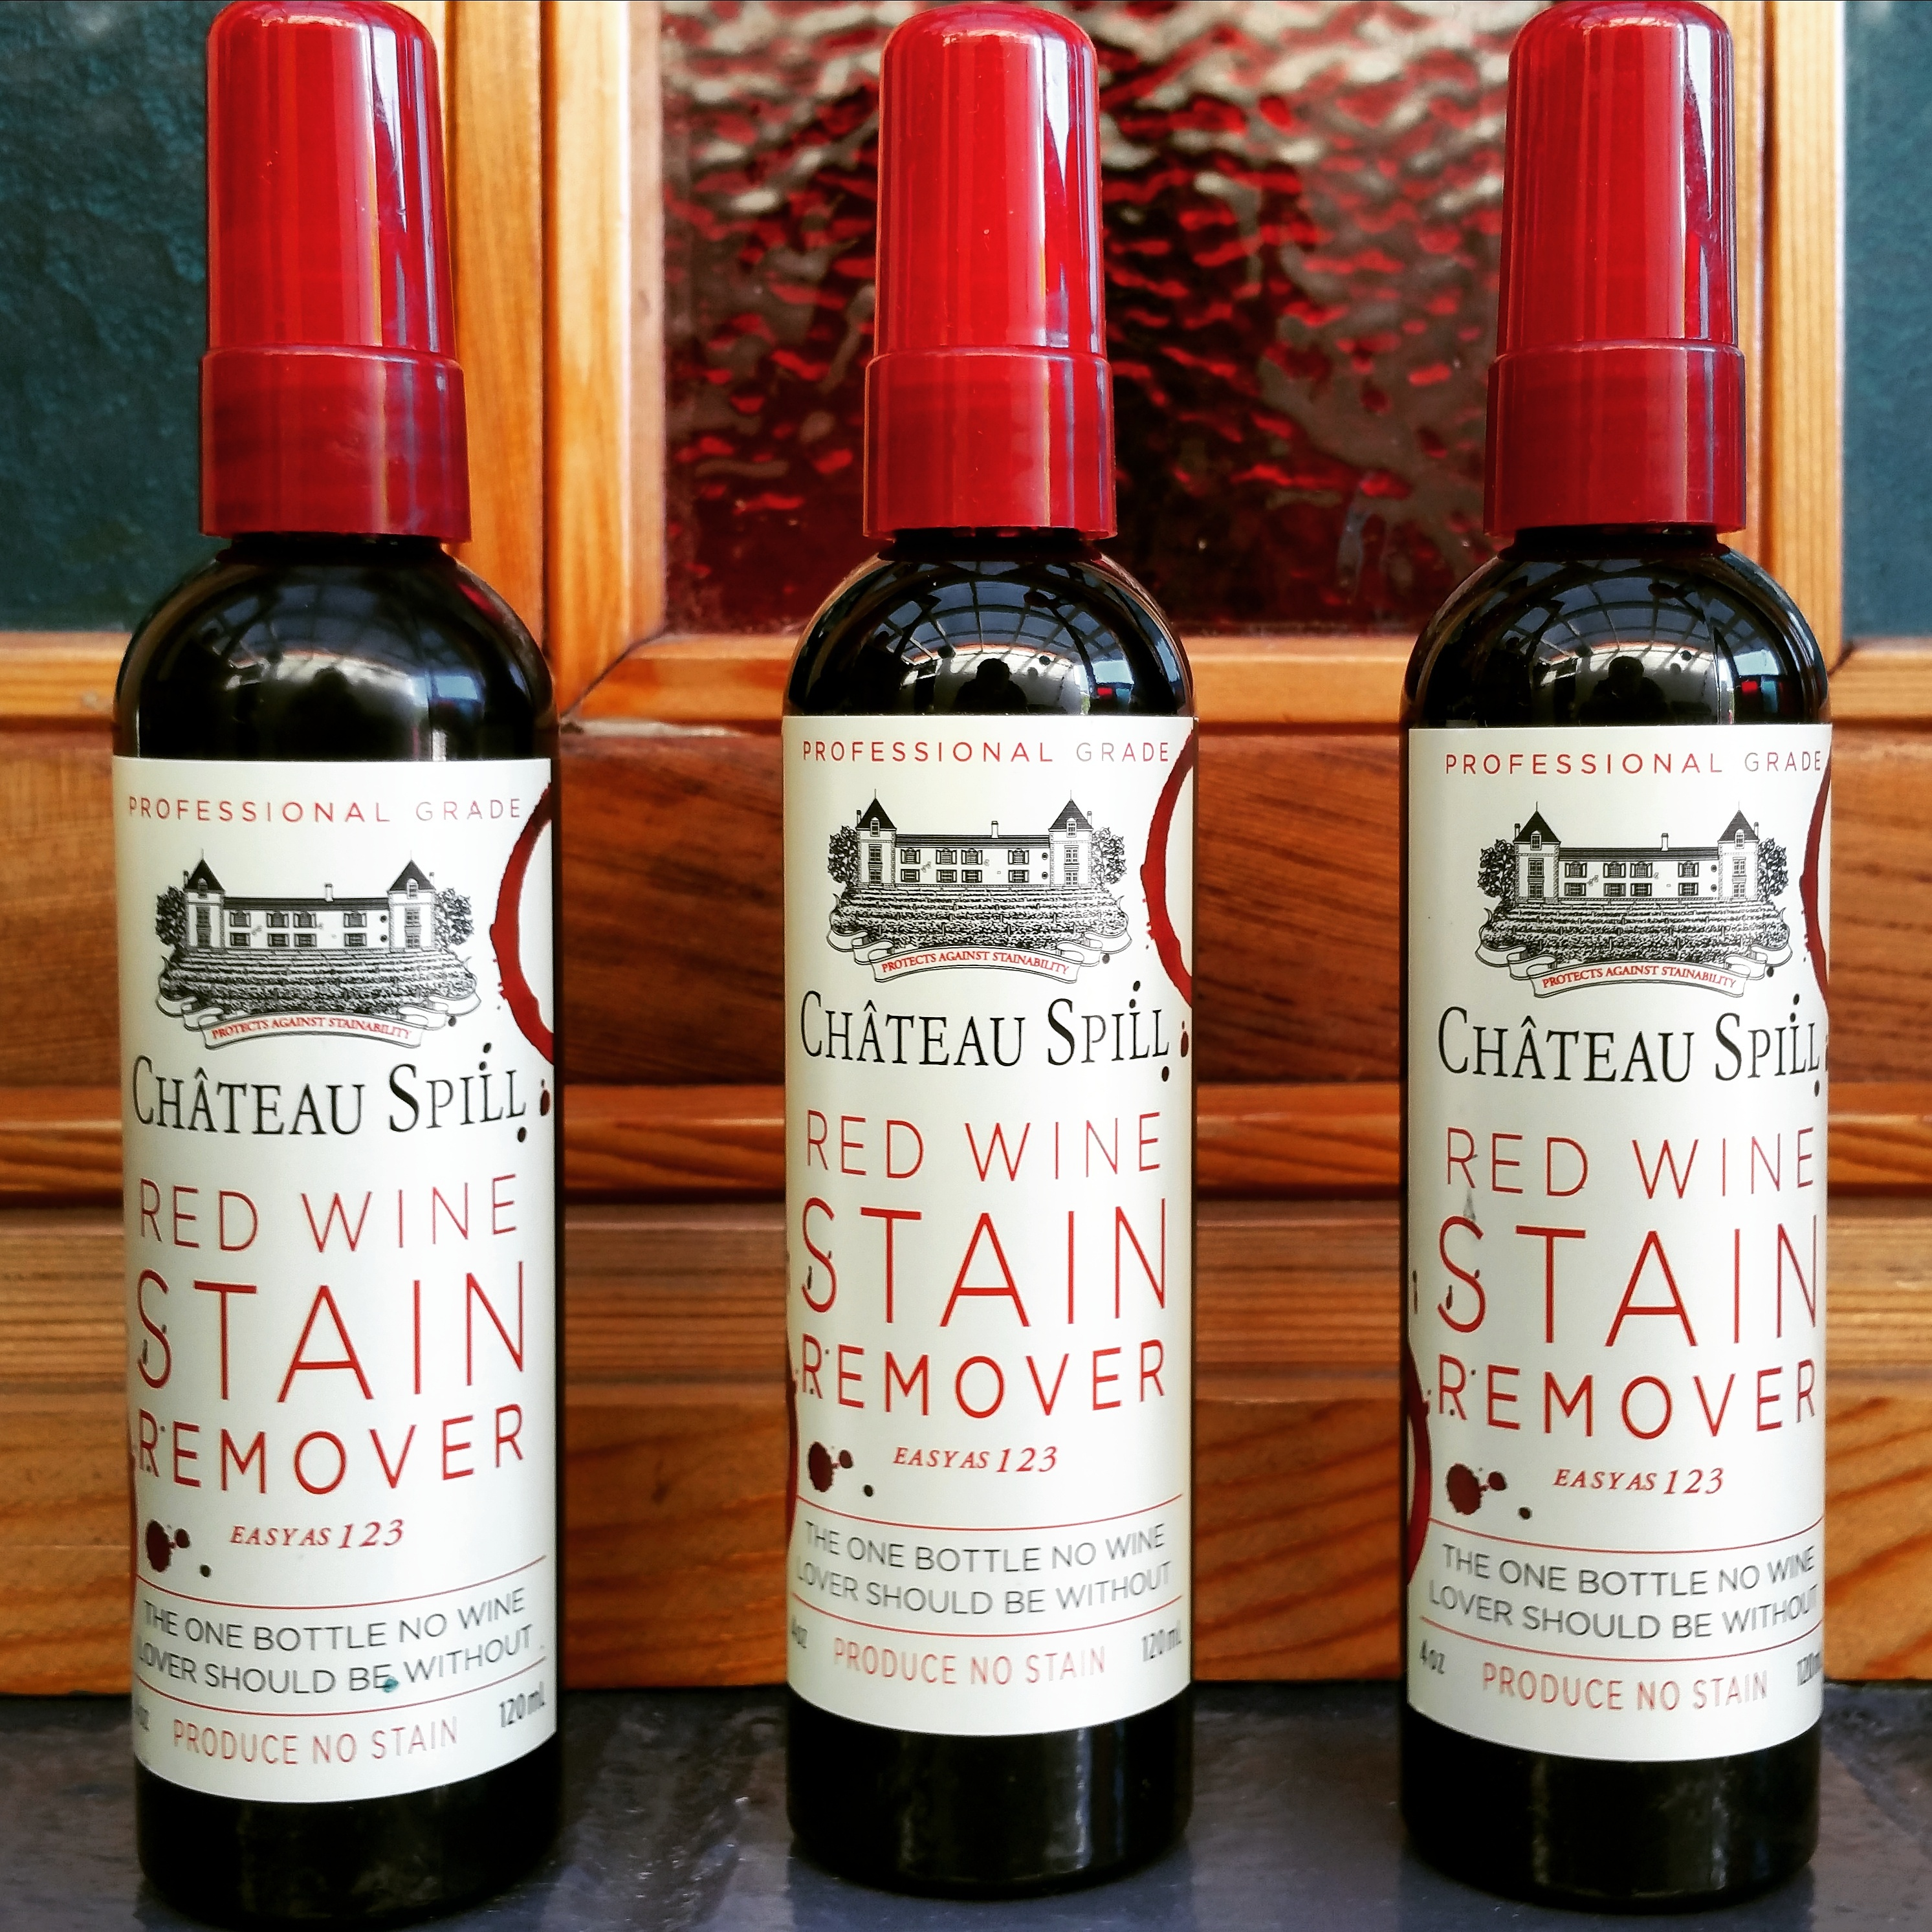 Chateau spill vs white wine for stain removal by conrad for How to remove red wine stain from cotton shirt